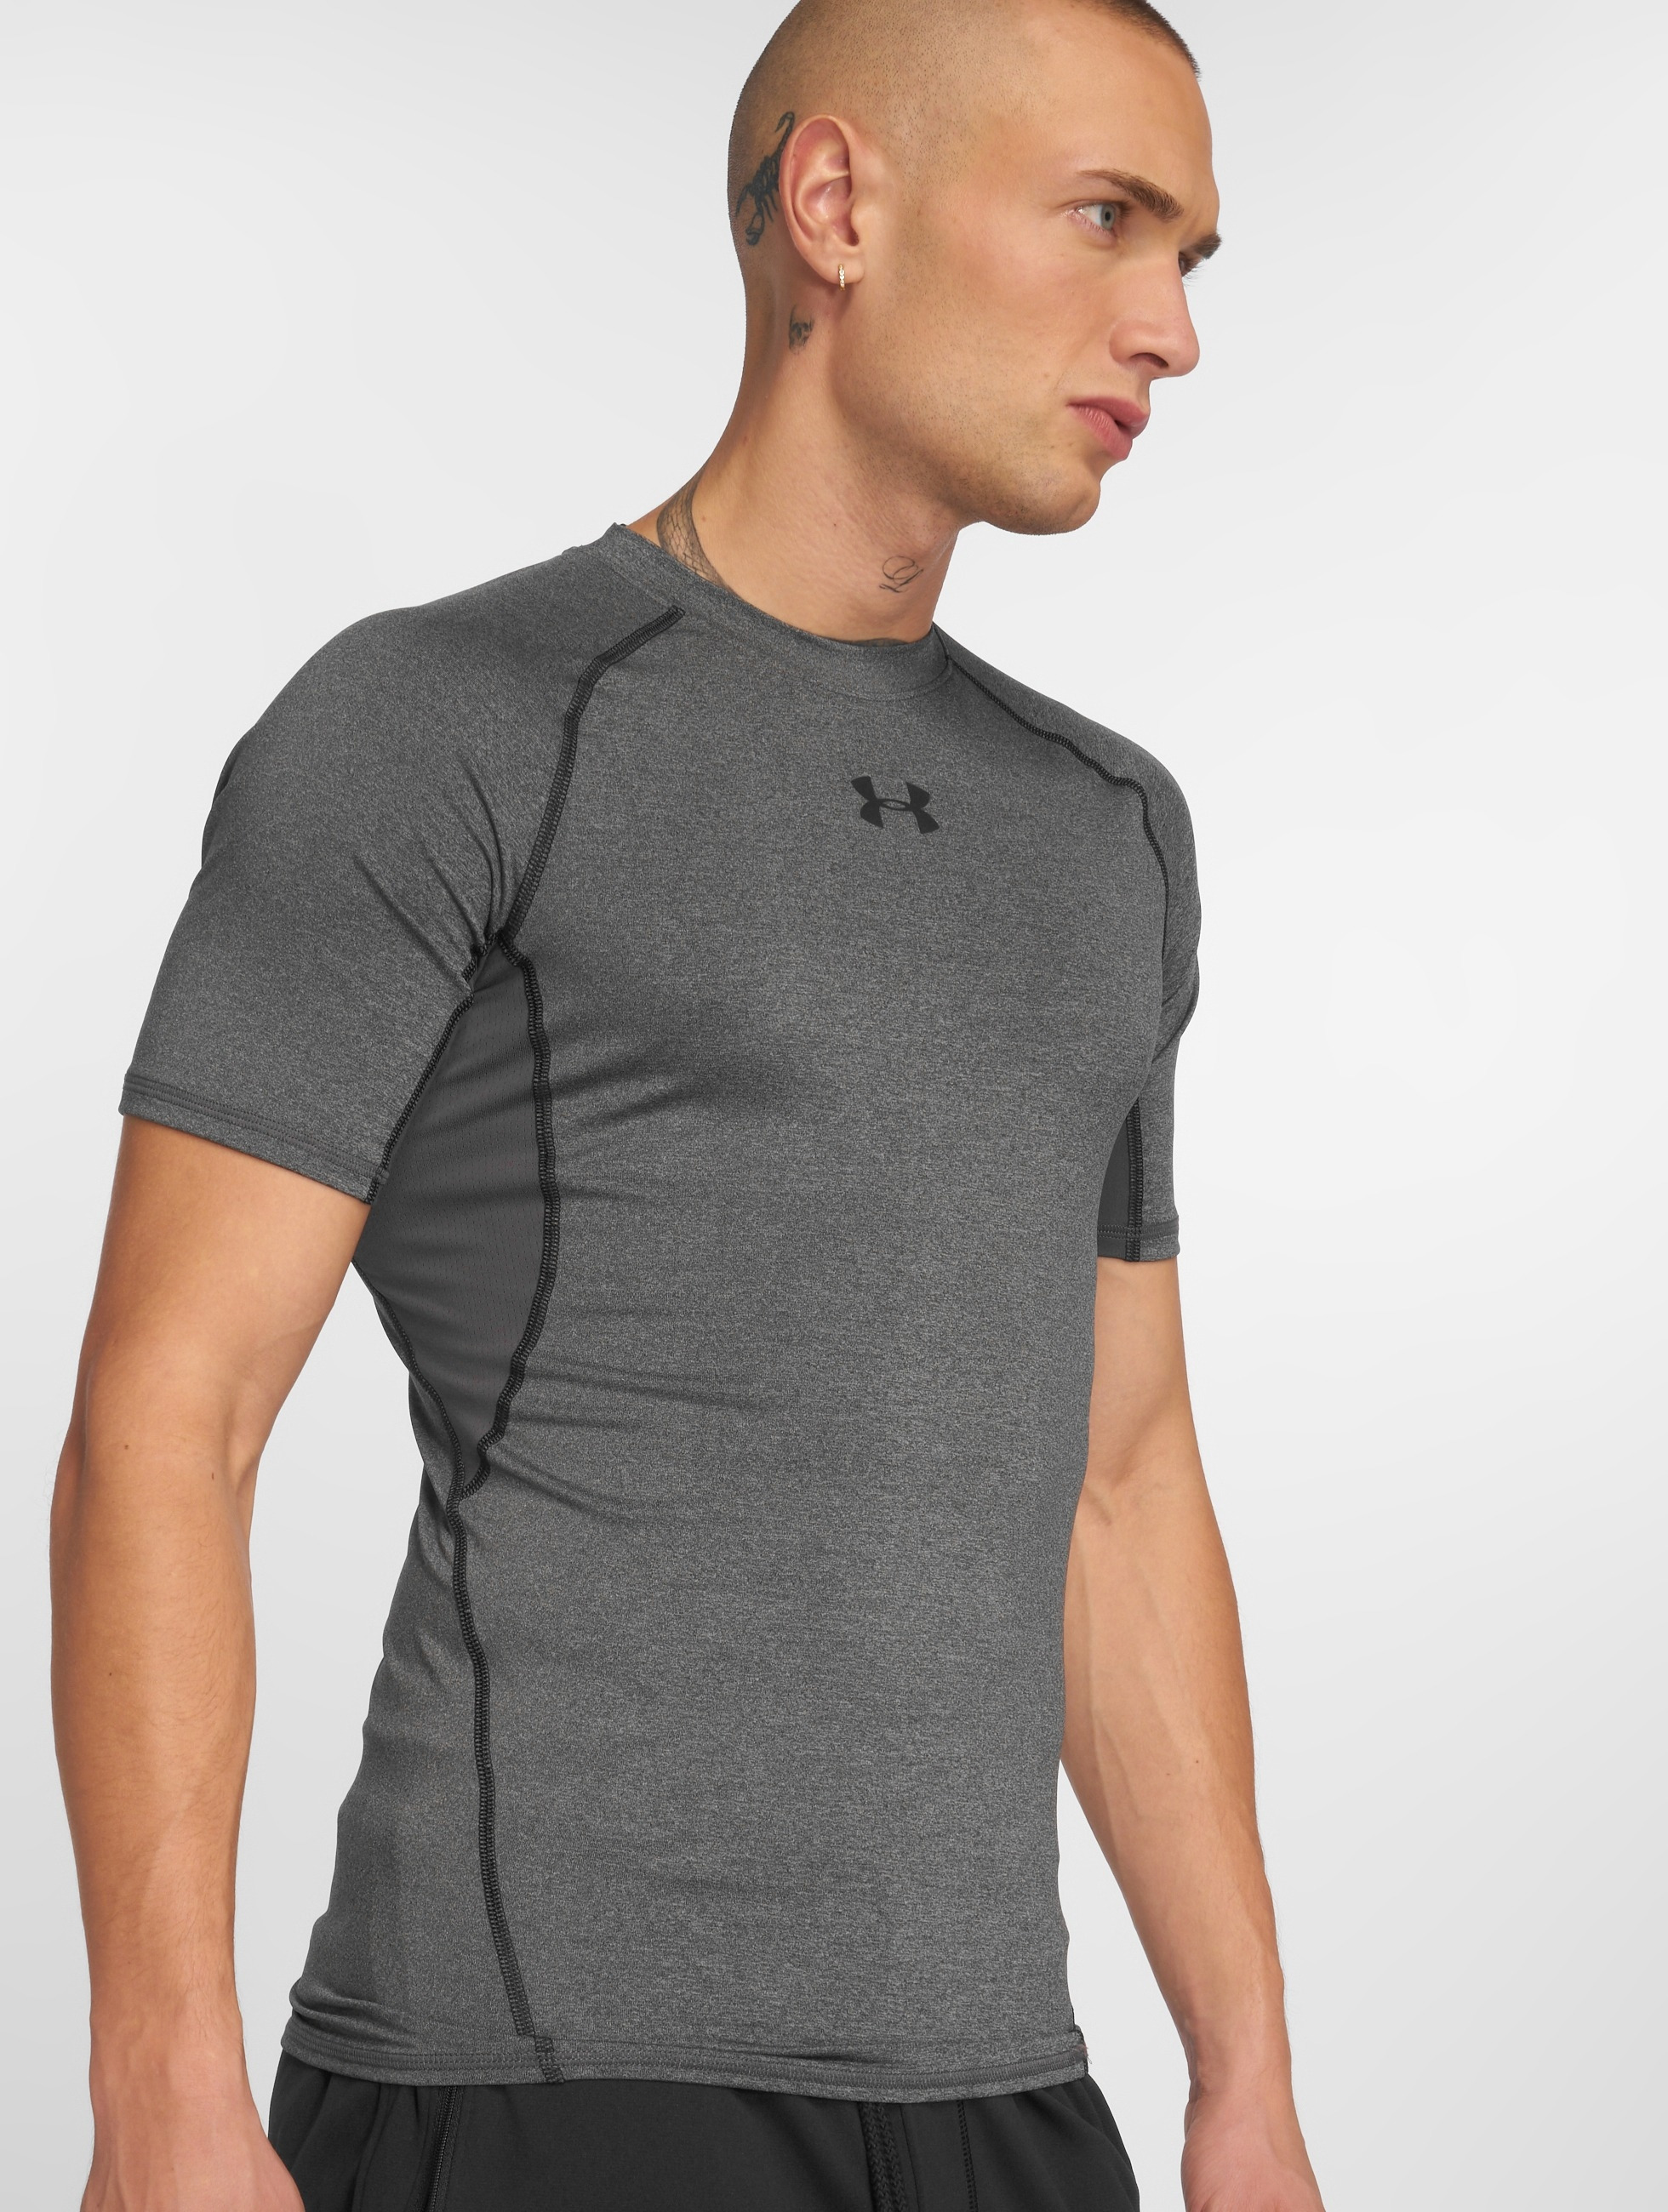 under armour heatgear compression gris homme t shirt under armour acheter pas cher haut 210442. Black Bedroom Furniture Sets. Home Design Ideas